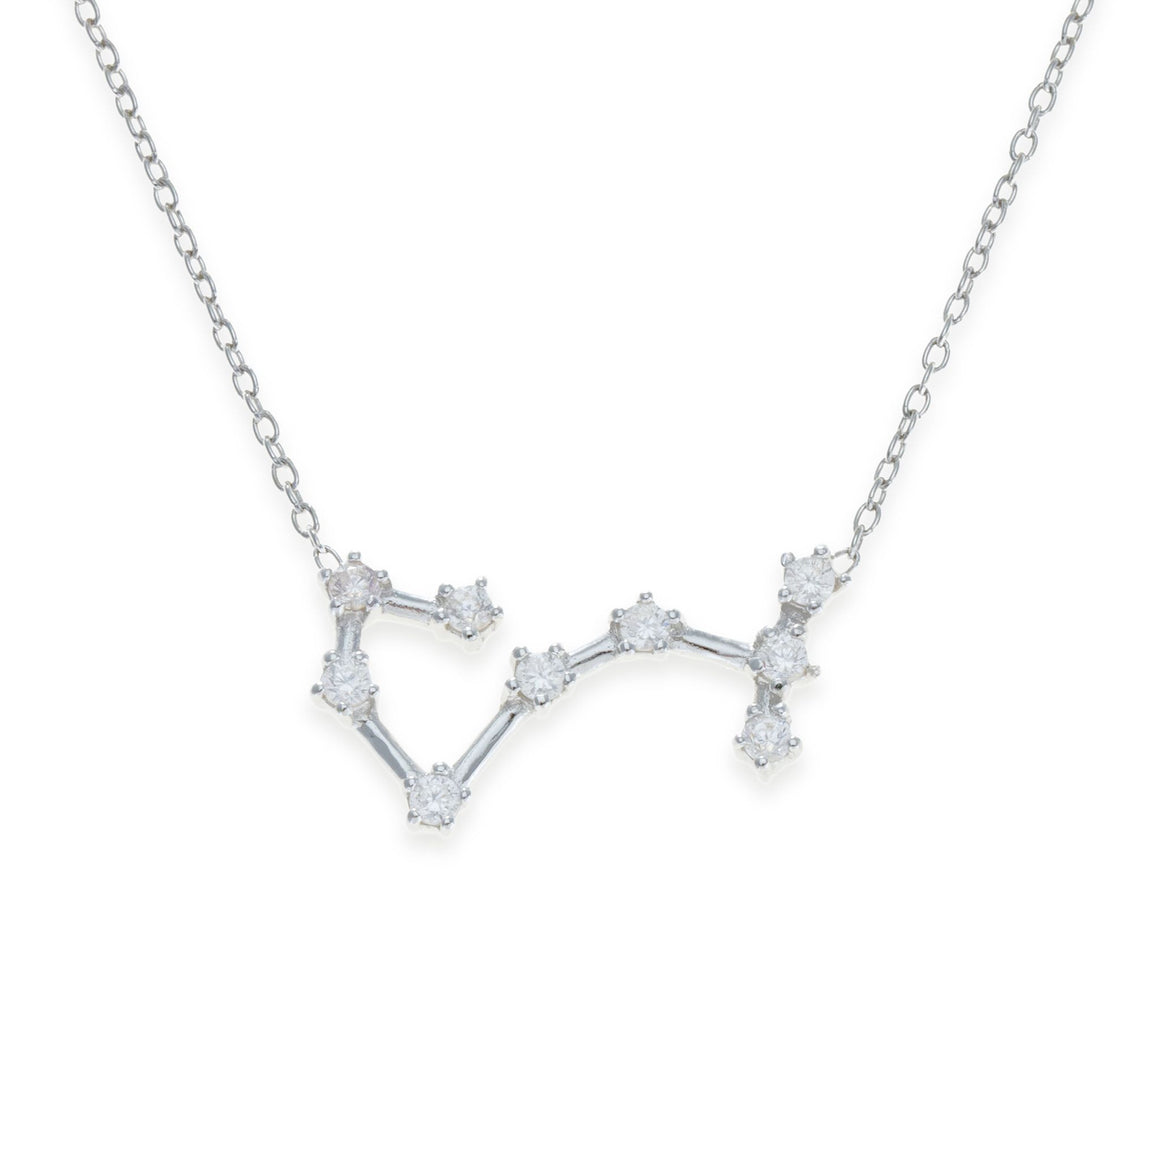 Sterling Silver Scorpio Necklace | Kith & Kin | Wish Upon a Star Collection